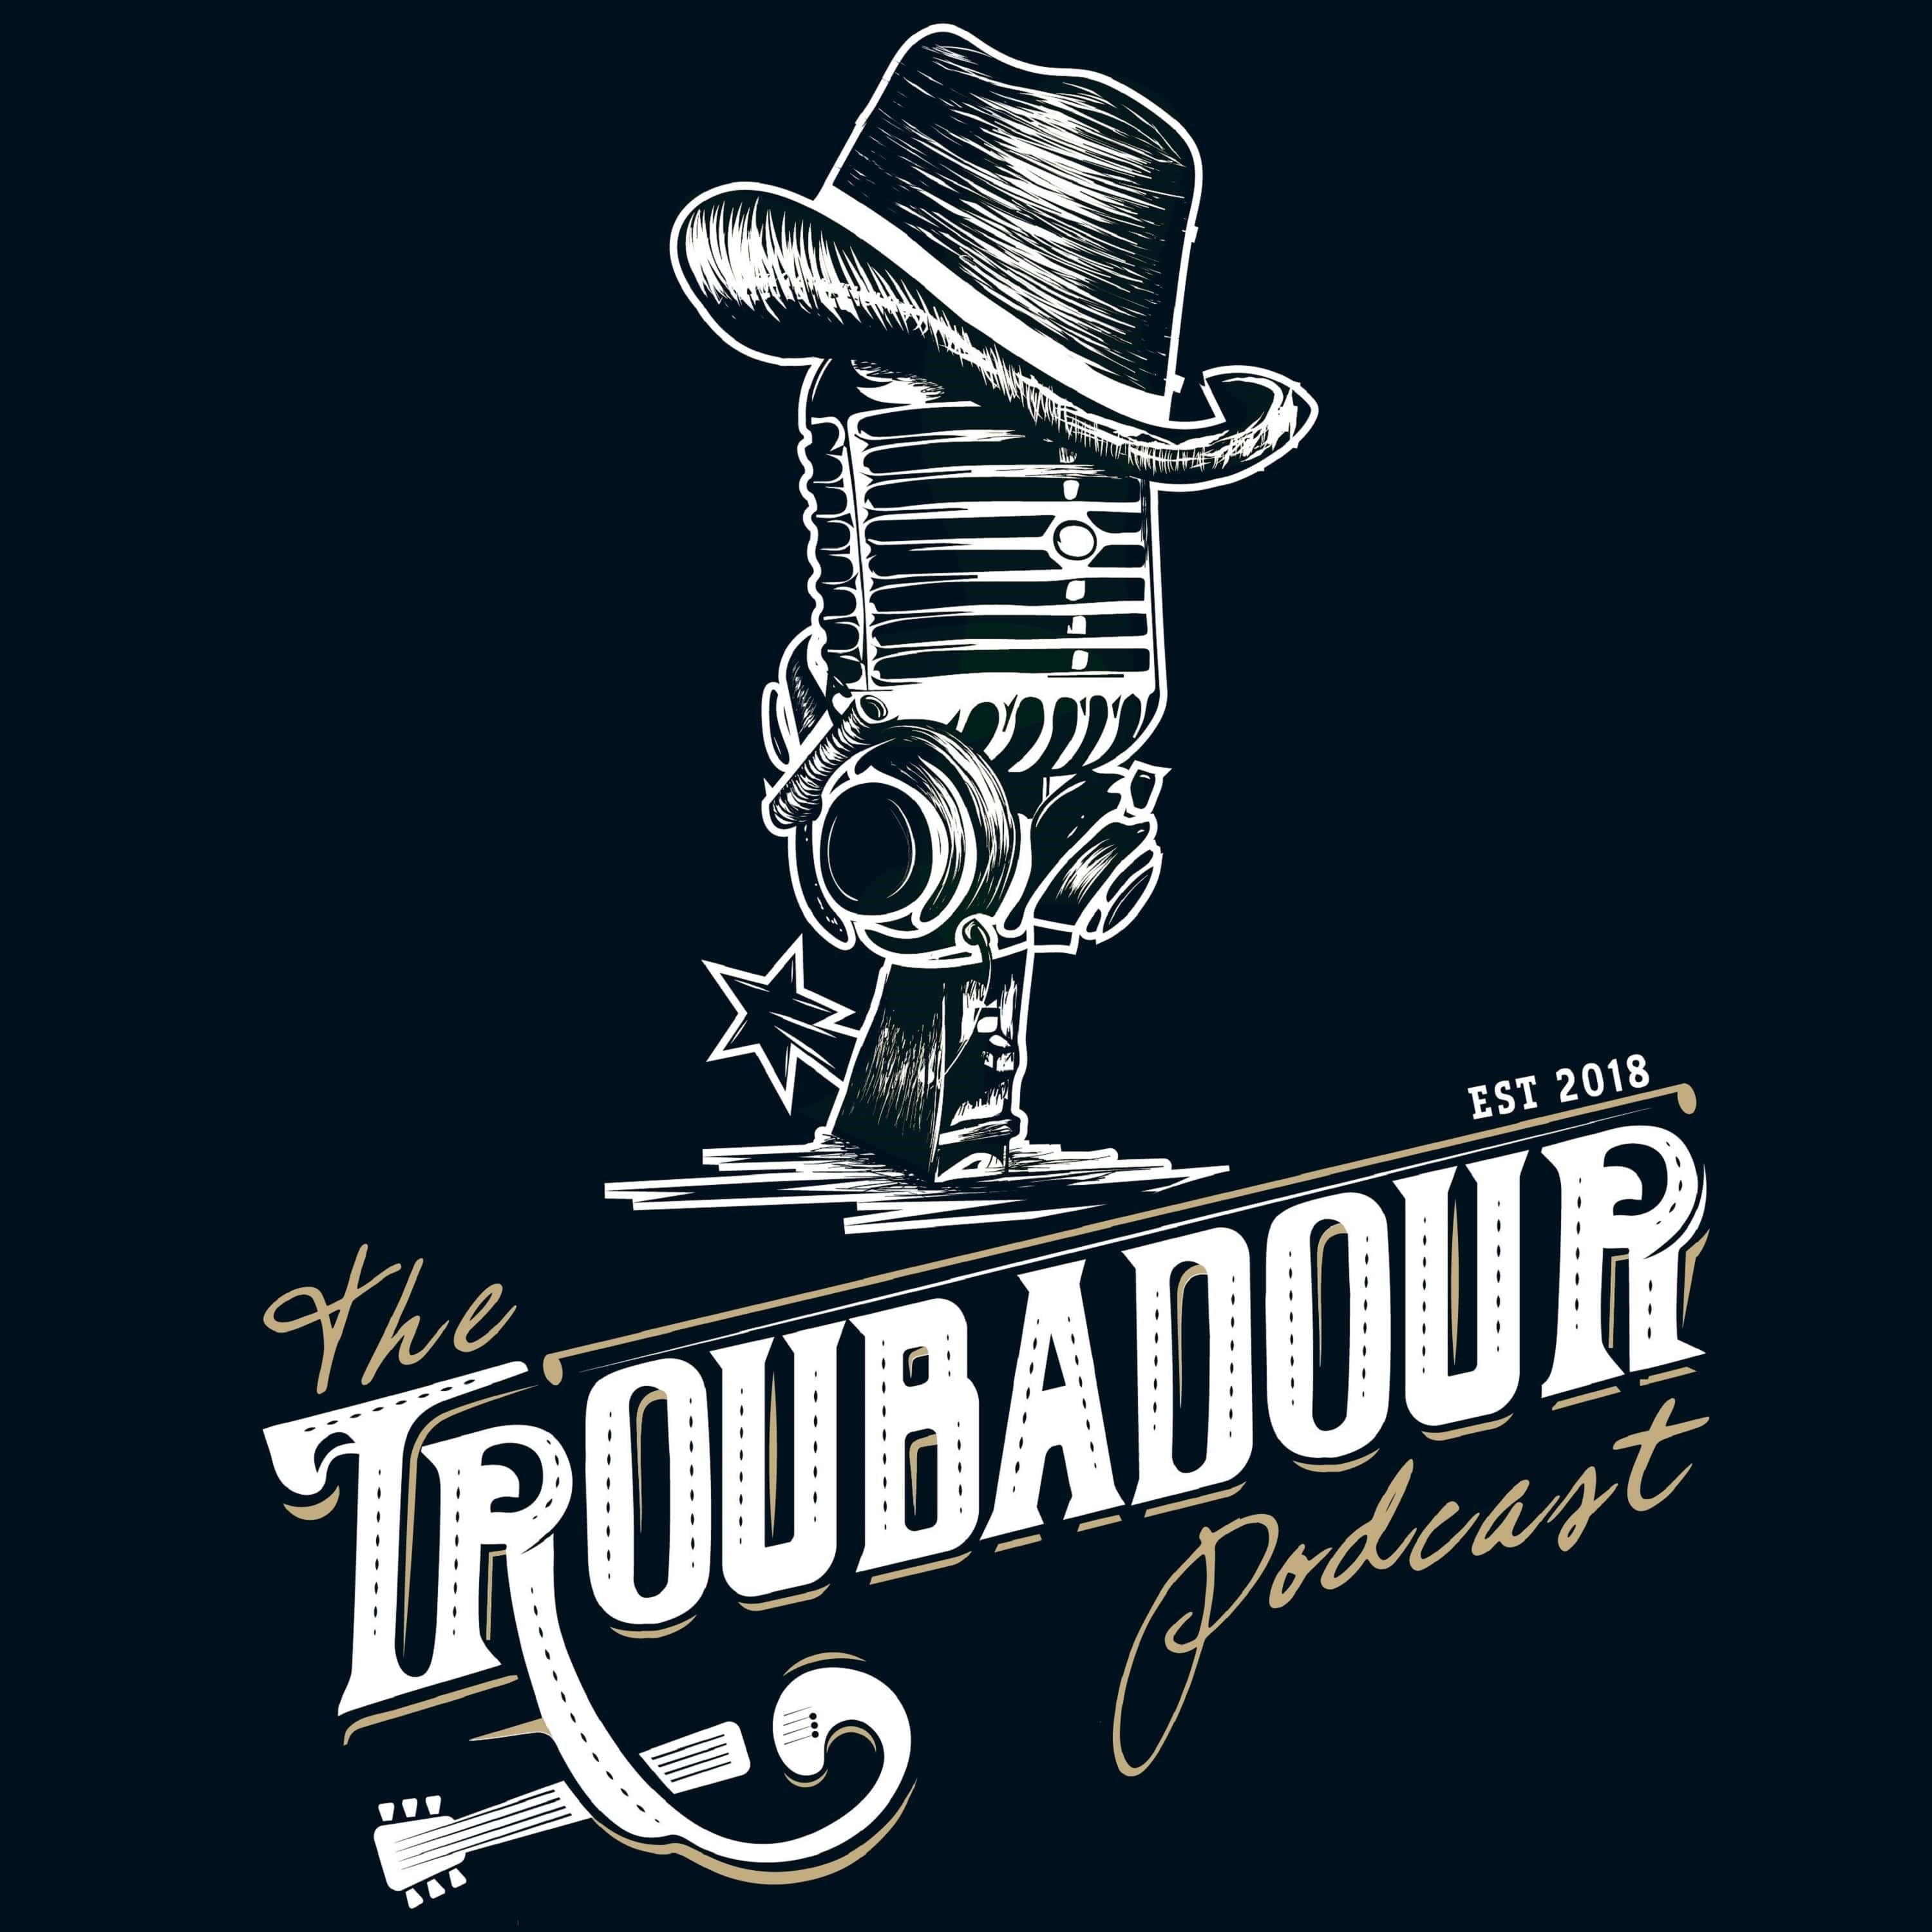 THE TROUBADOUR PODCAST - The Premier Red Dirt, Texas Country and Independent Music Podcast